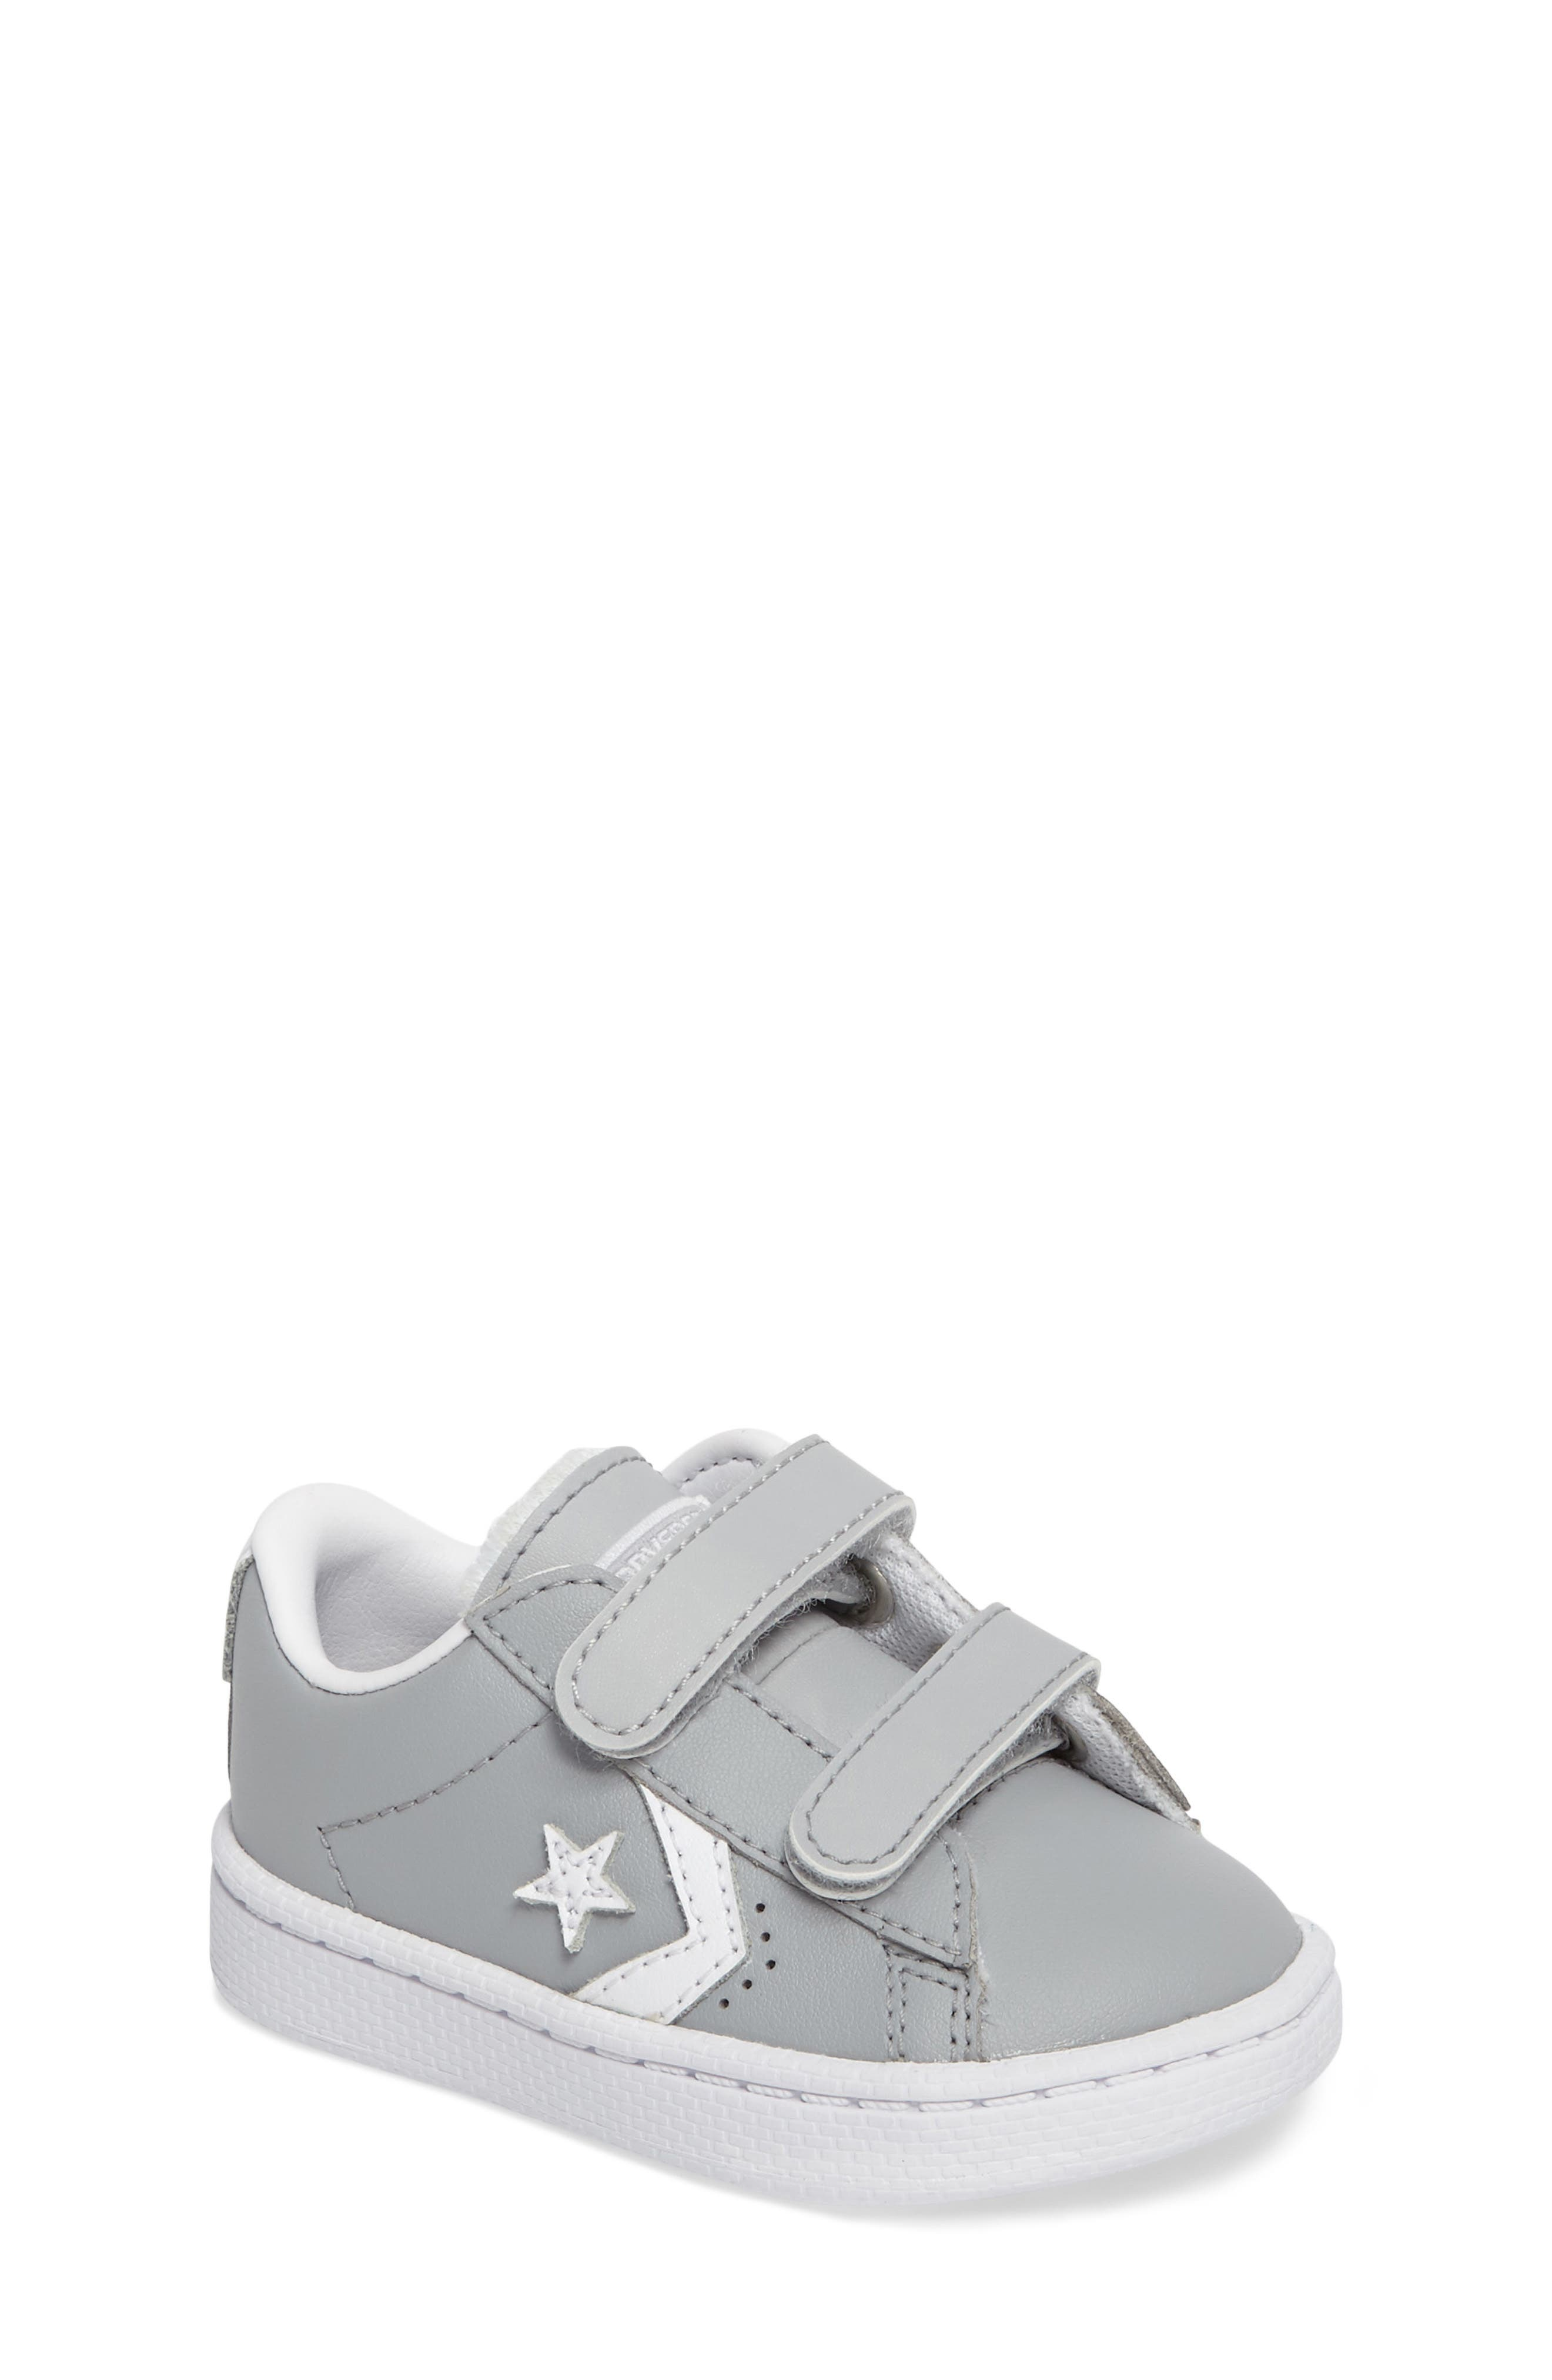 Alternate Image 1 Selected - Converse Pro Leather Low Top Sneaker (Baby, Walker, & Toddler)